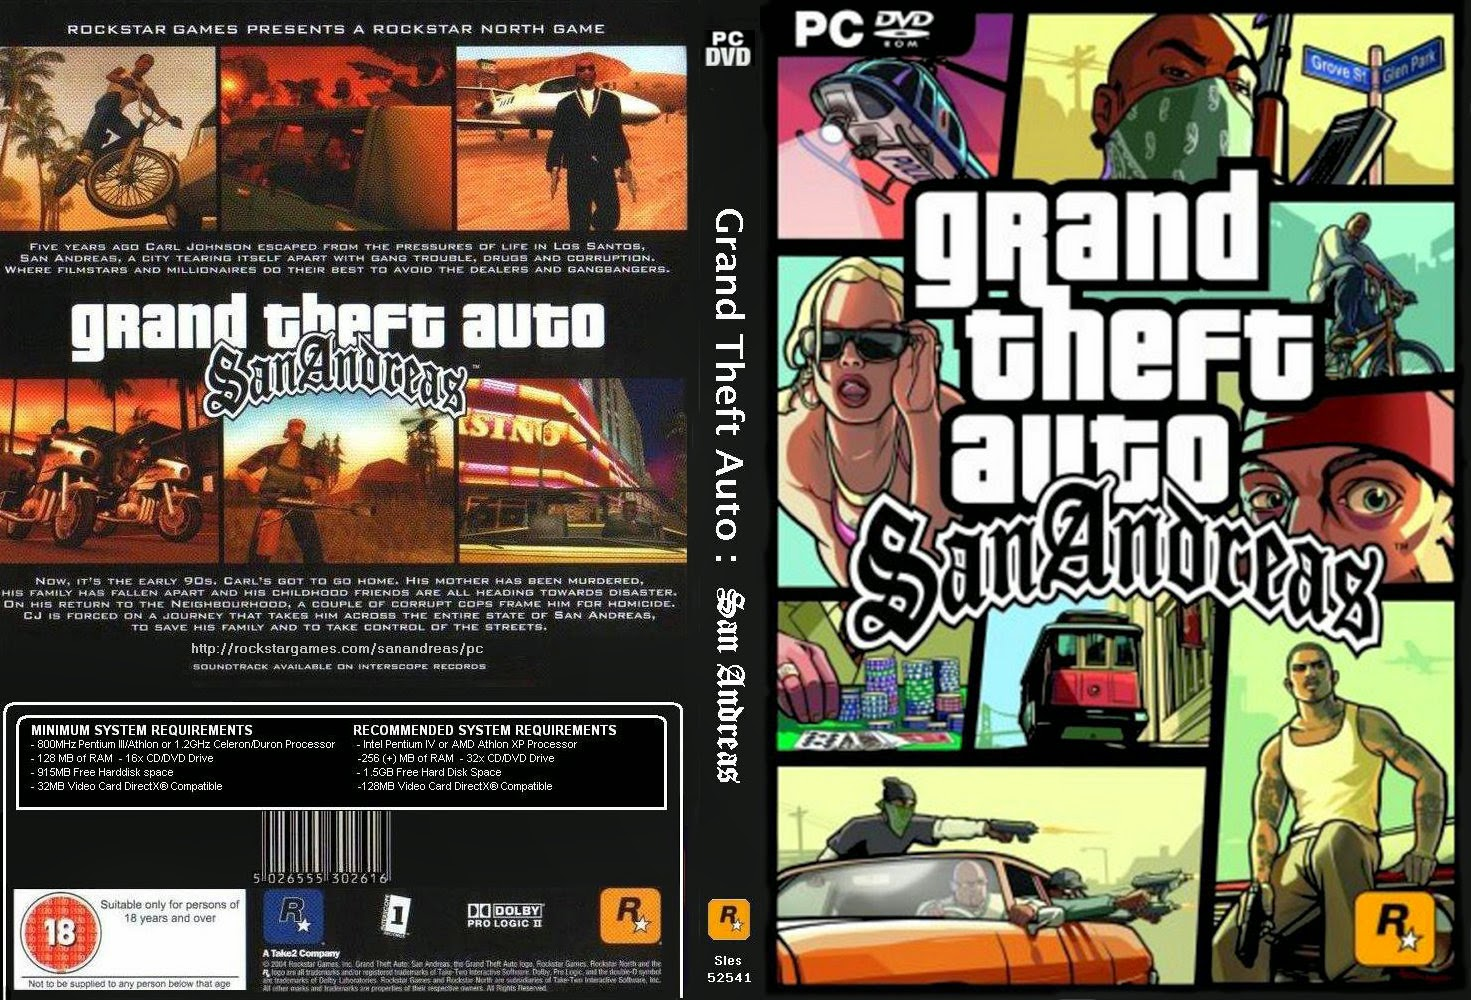 Gta san andreas save game pc 100 complete